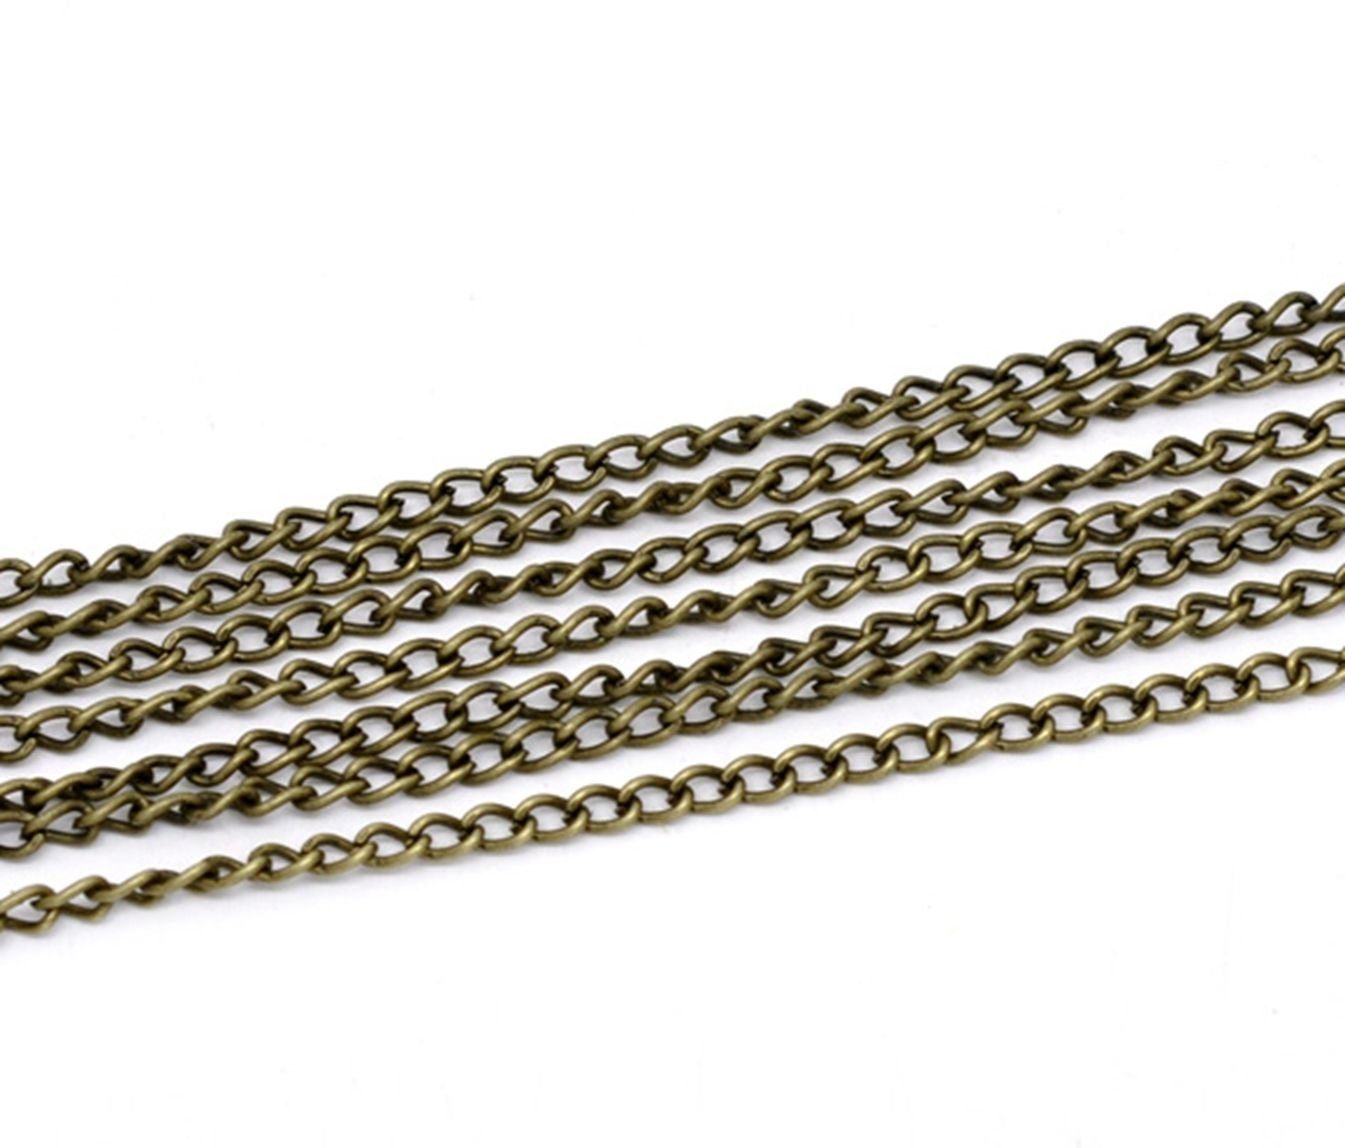 5 Metres Length of Antique Bronze 4mm x 3mm Link Open Curb Chain. For Jewellery Making and Art Crafts.